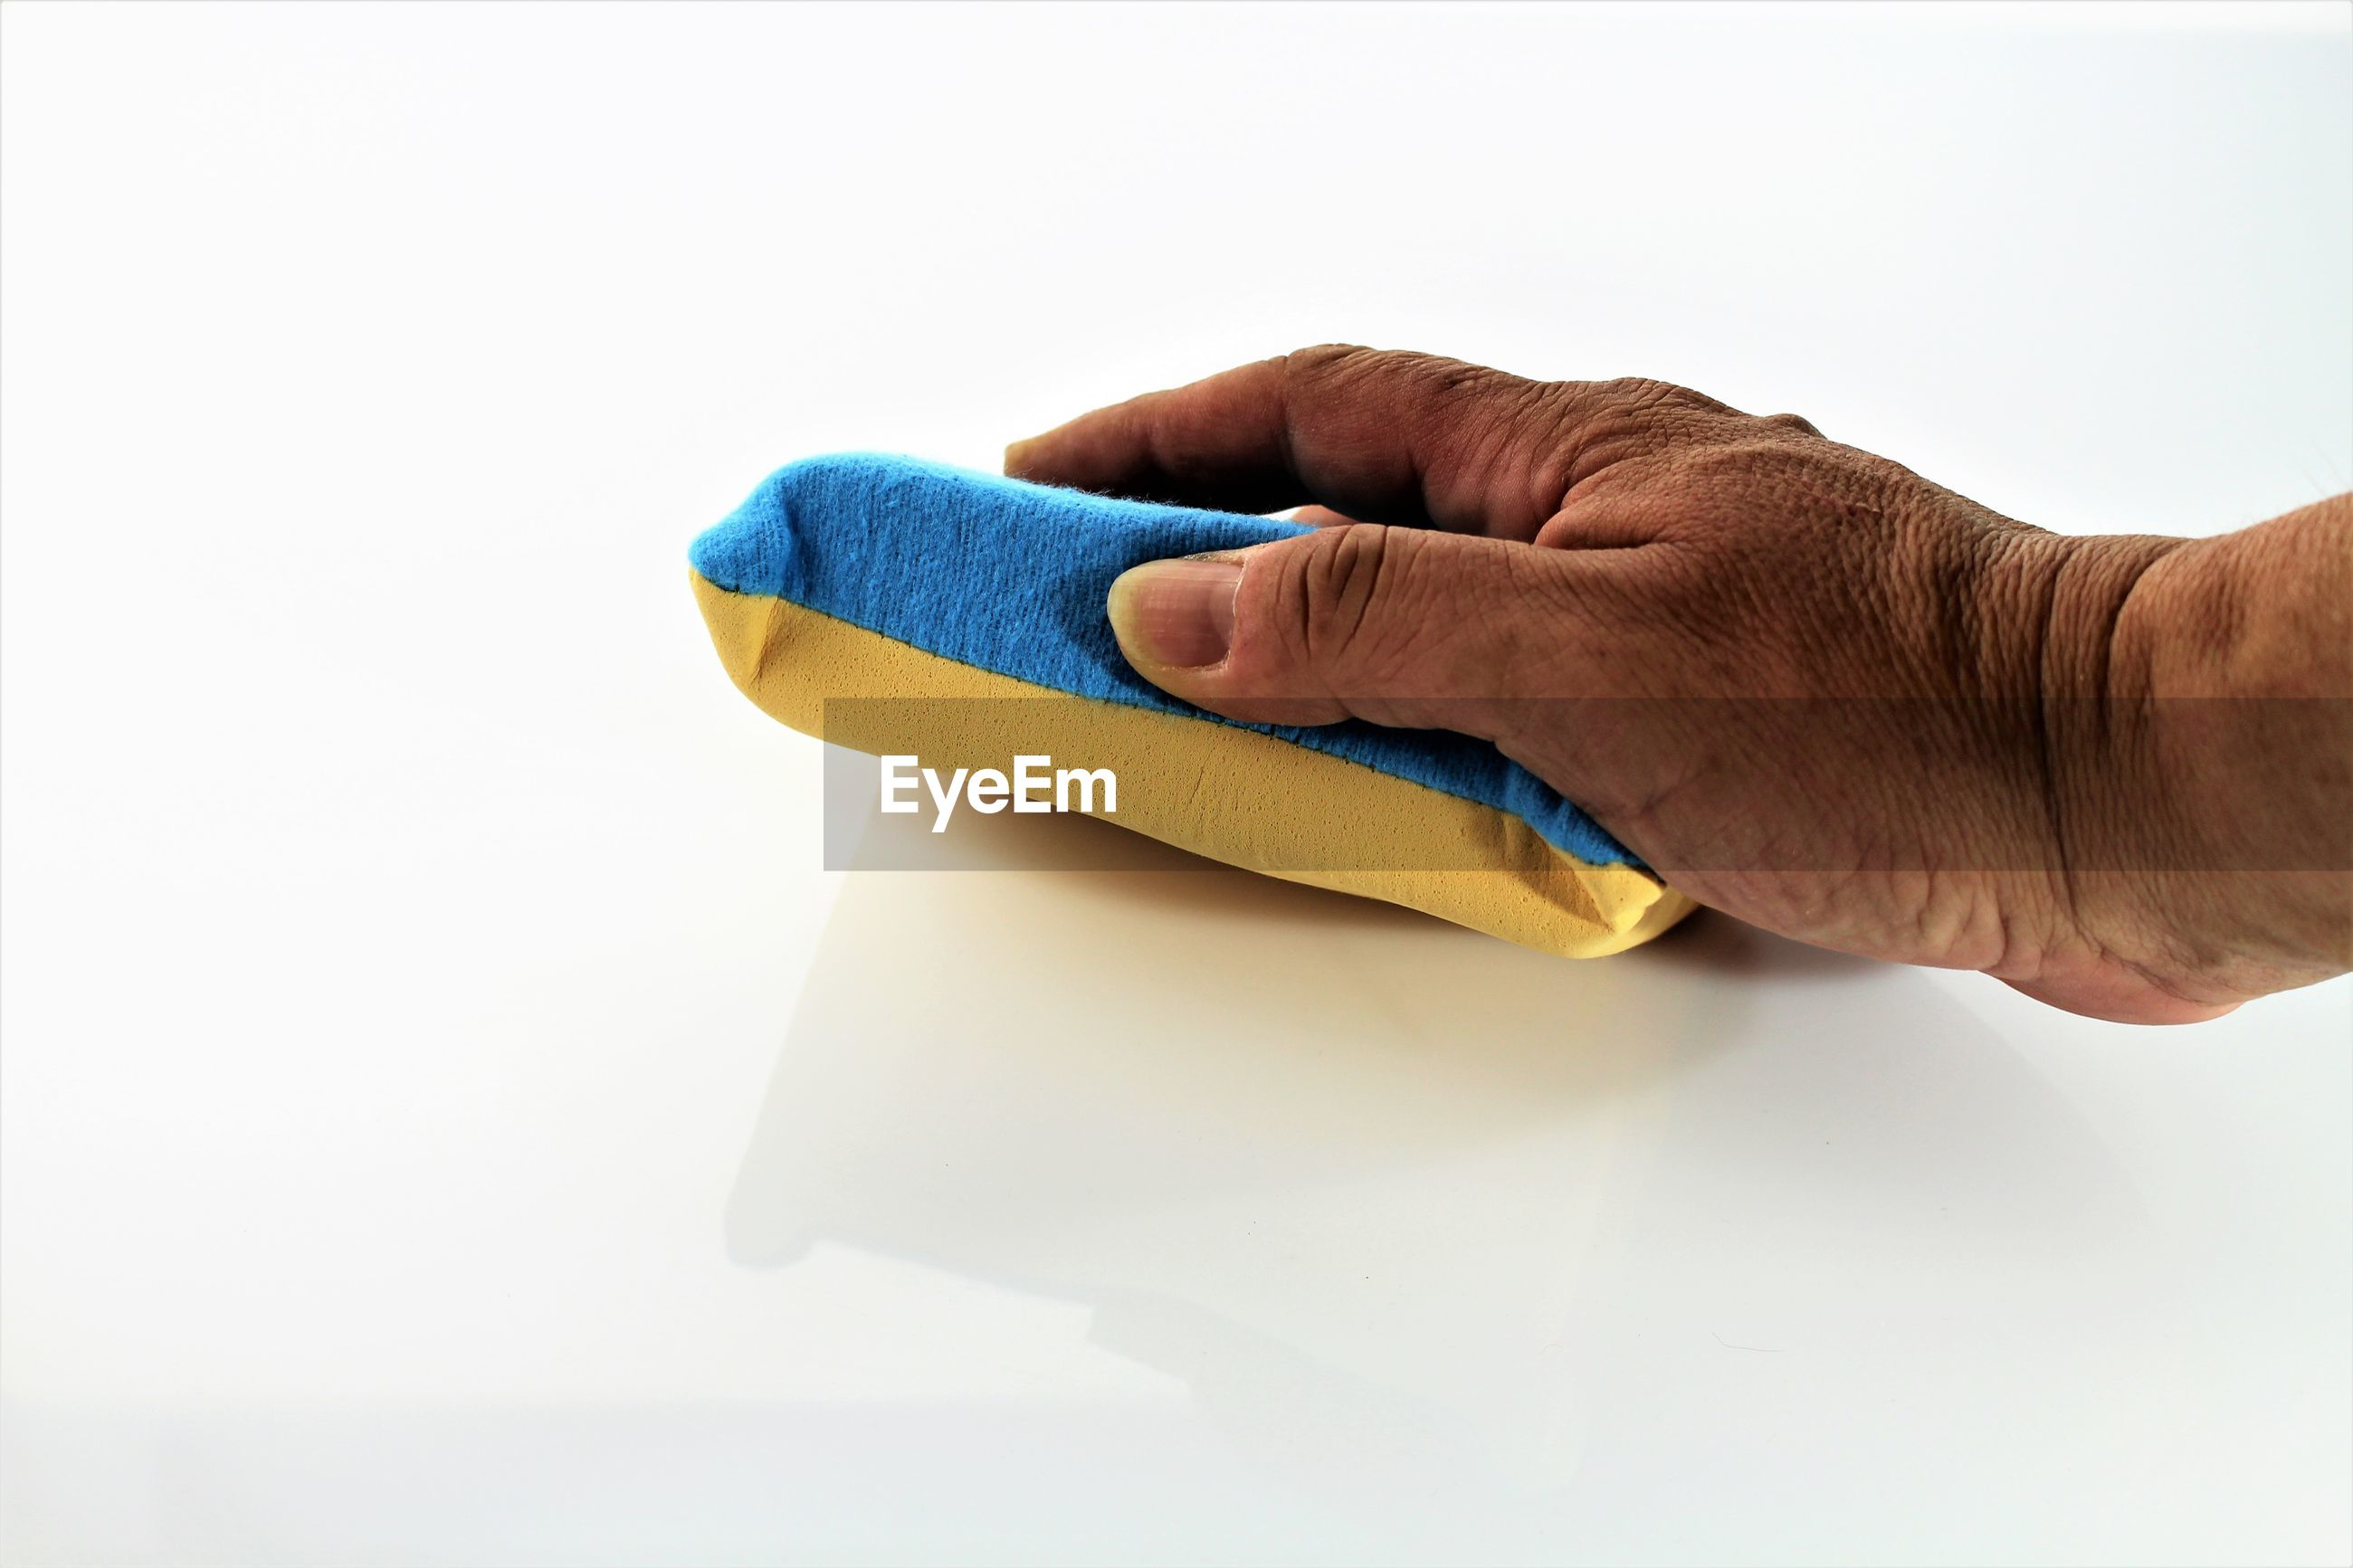 Cropped hand of person cleaning table with sponge